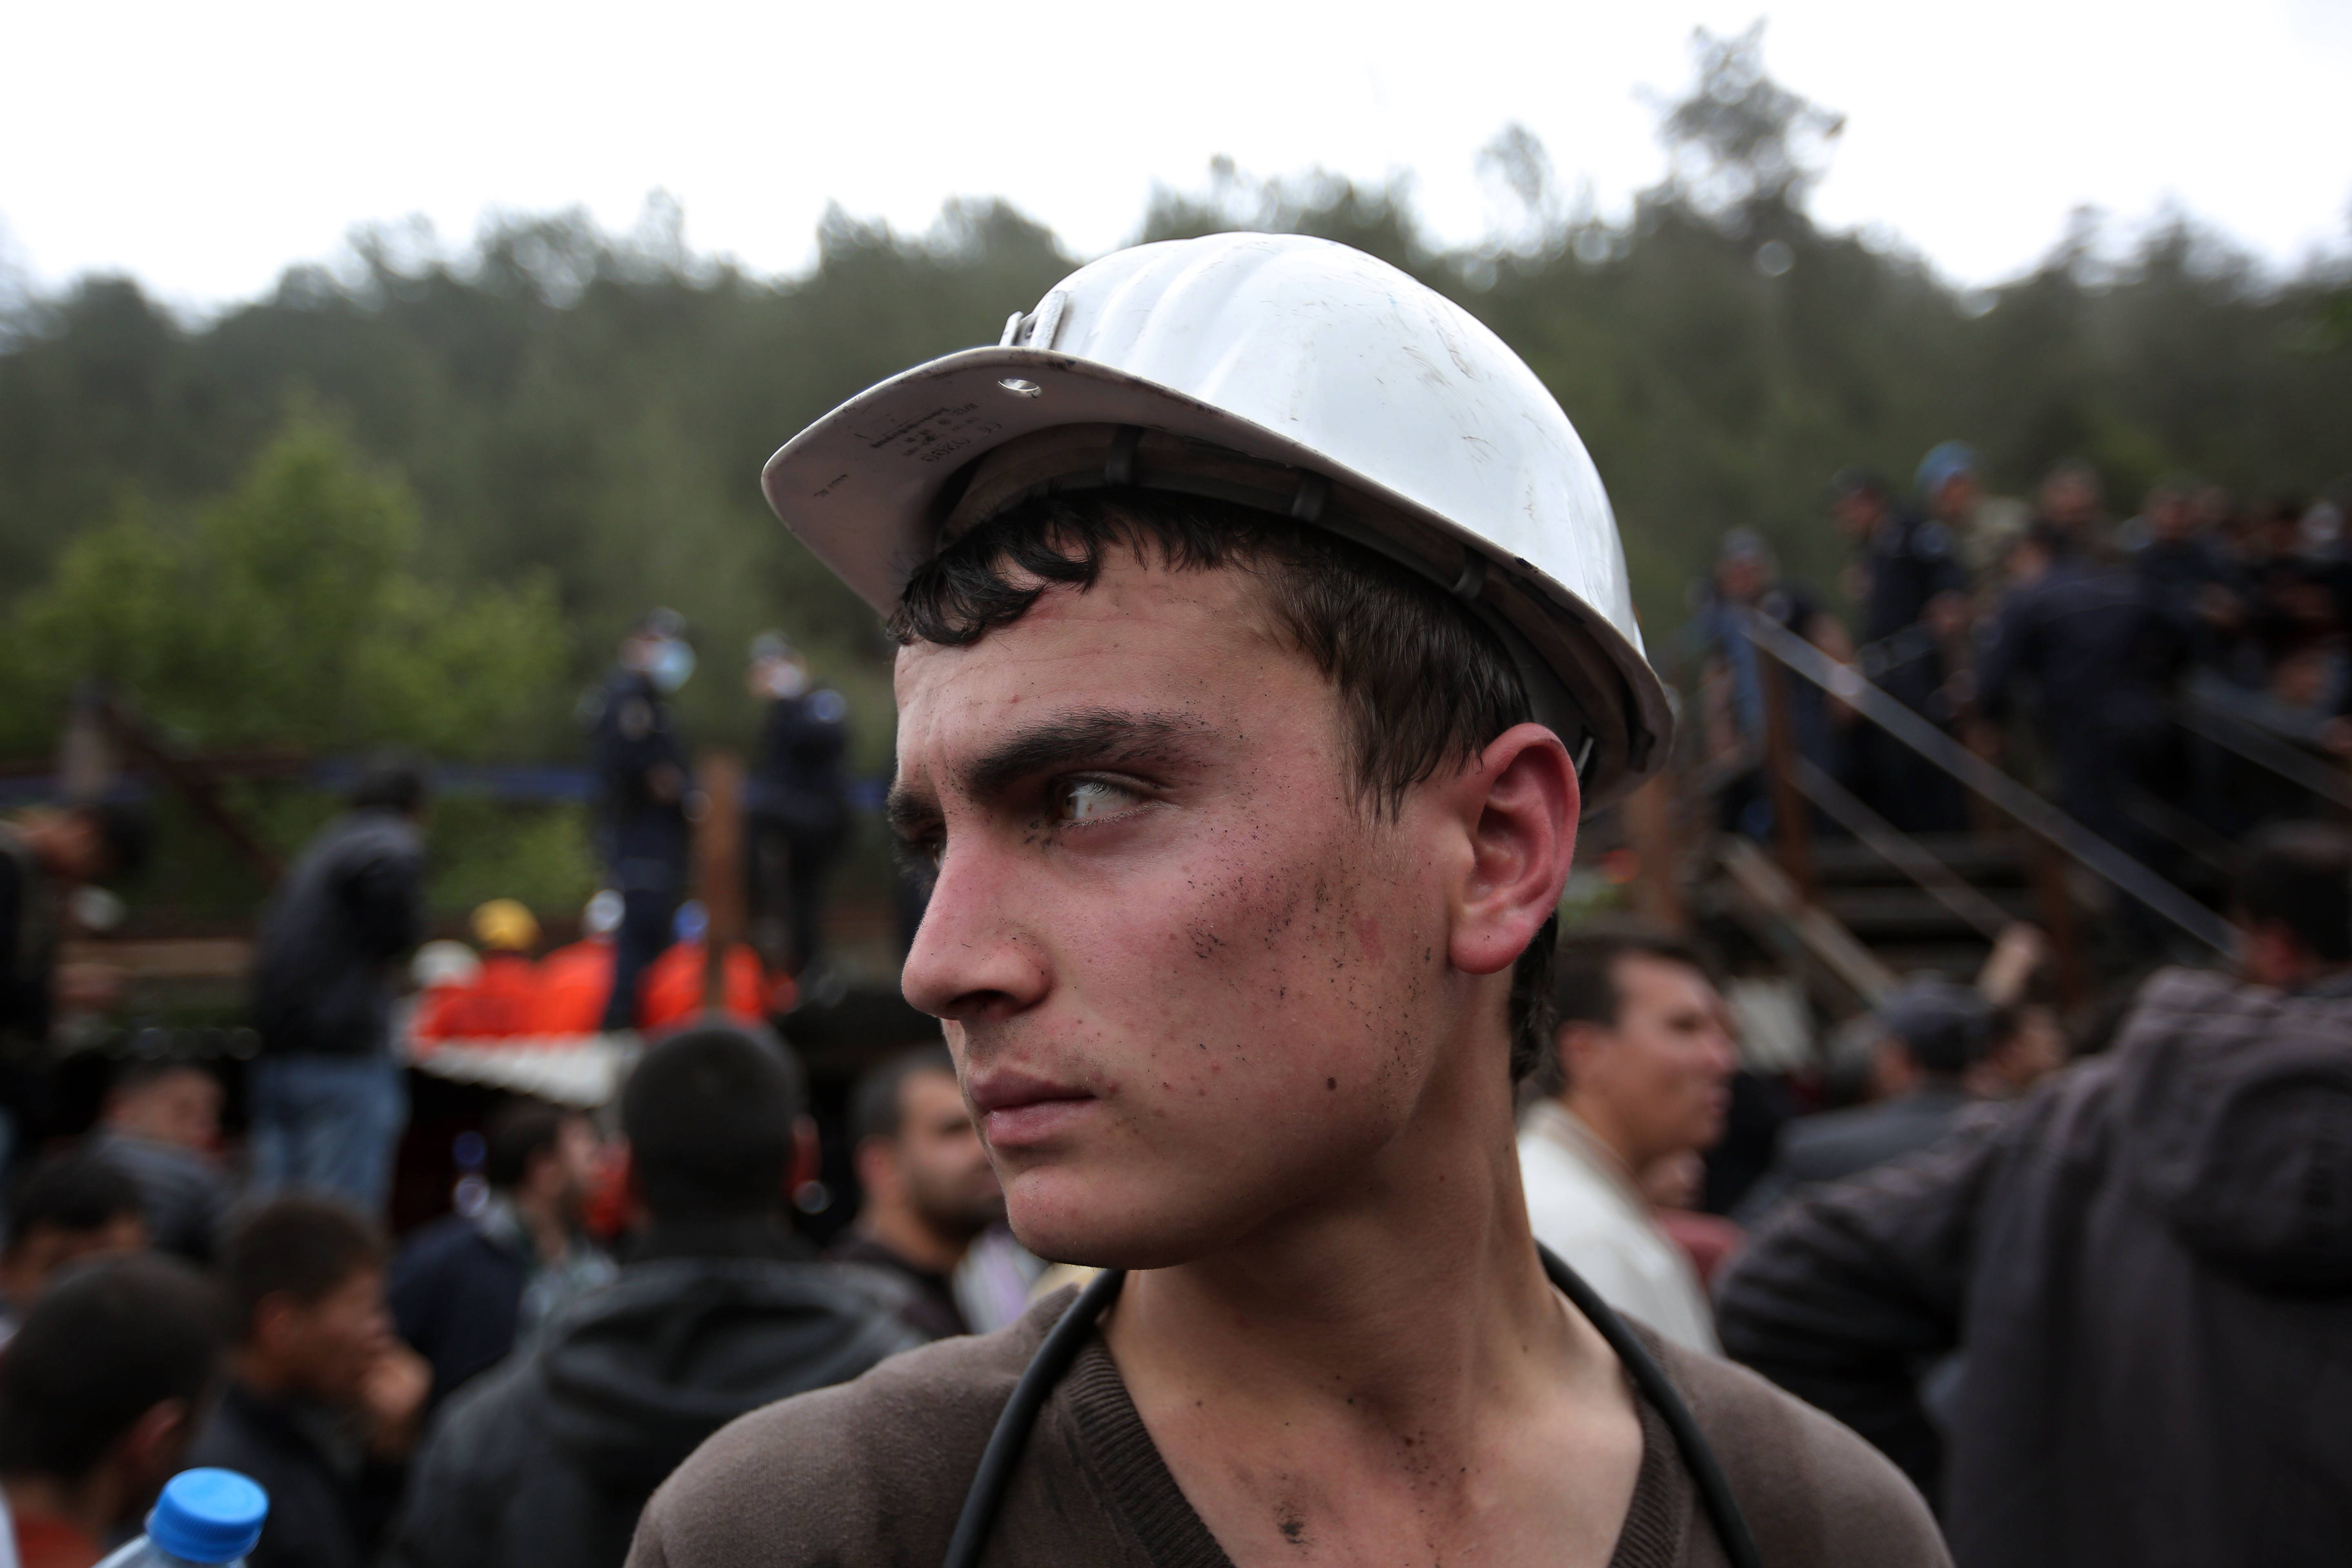 A miner looks on as rescue workers carry the dead body of a miner outside the mine in Soma, western Turkey, Wednesday, May 14, 2014.